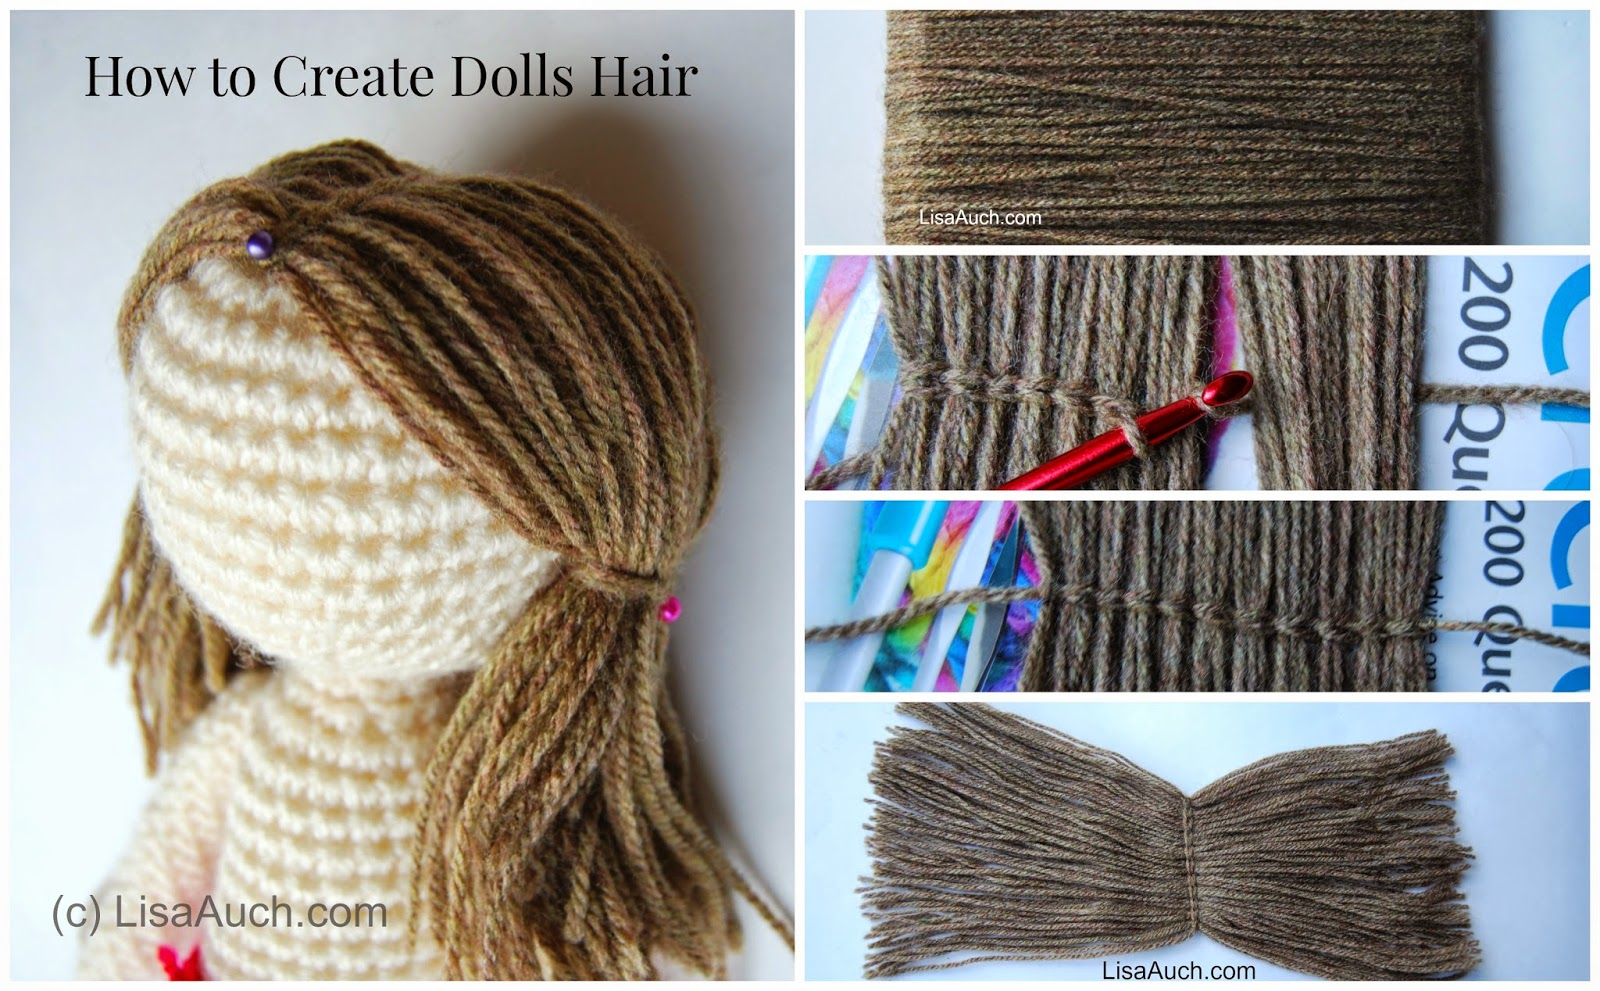 Make curly doll hair with yarn-tutorial youtube.